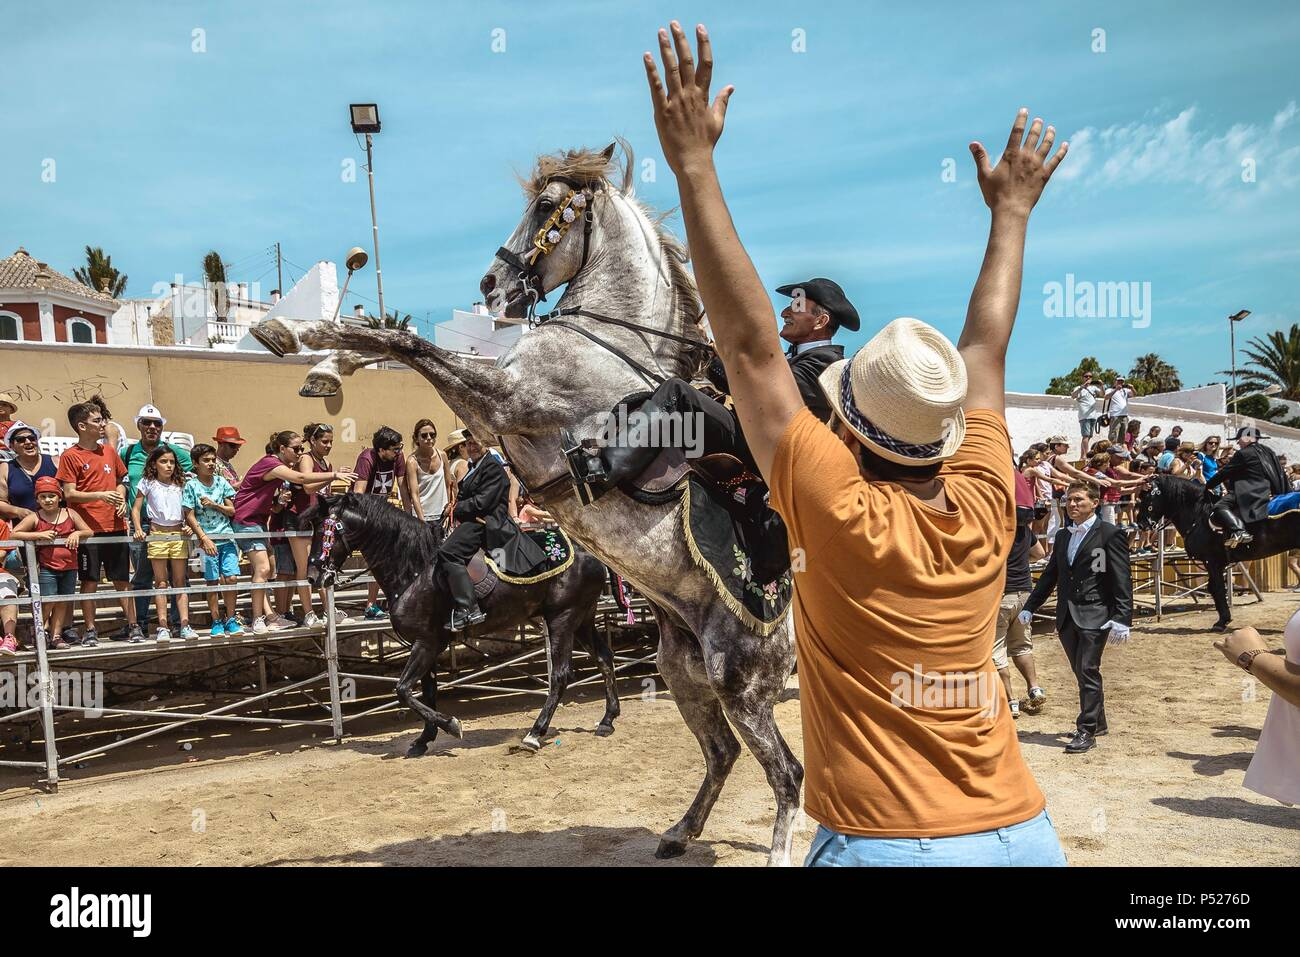 Ciutadella, Spain. 24 June, 2018:  A 'caixer' (horse rider) rears up on his horse surrounded by a cheering crowd at the end of the training for the 'Jocs des Pla' (medieval tournament) during the traditional 'Sant Joan' (Saint John) festival in Ciutadella de Menorca Credit: Matthias Oesterle/Alamy Live News - Stock Image